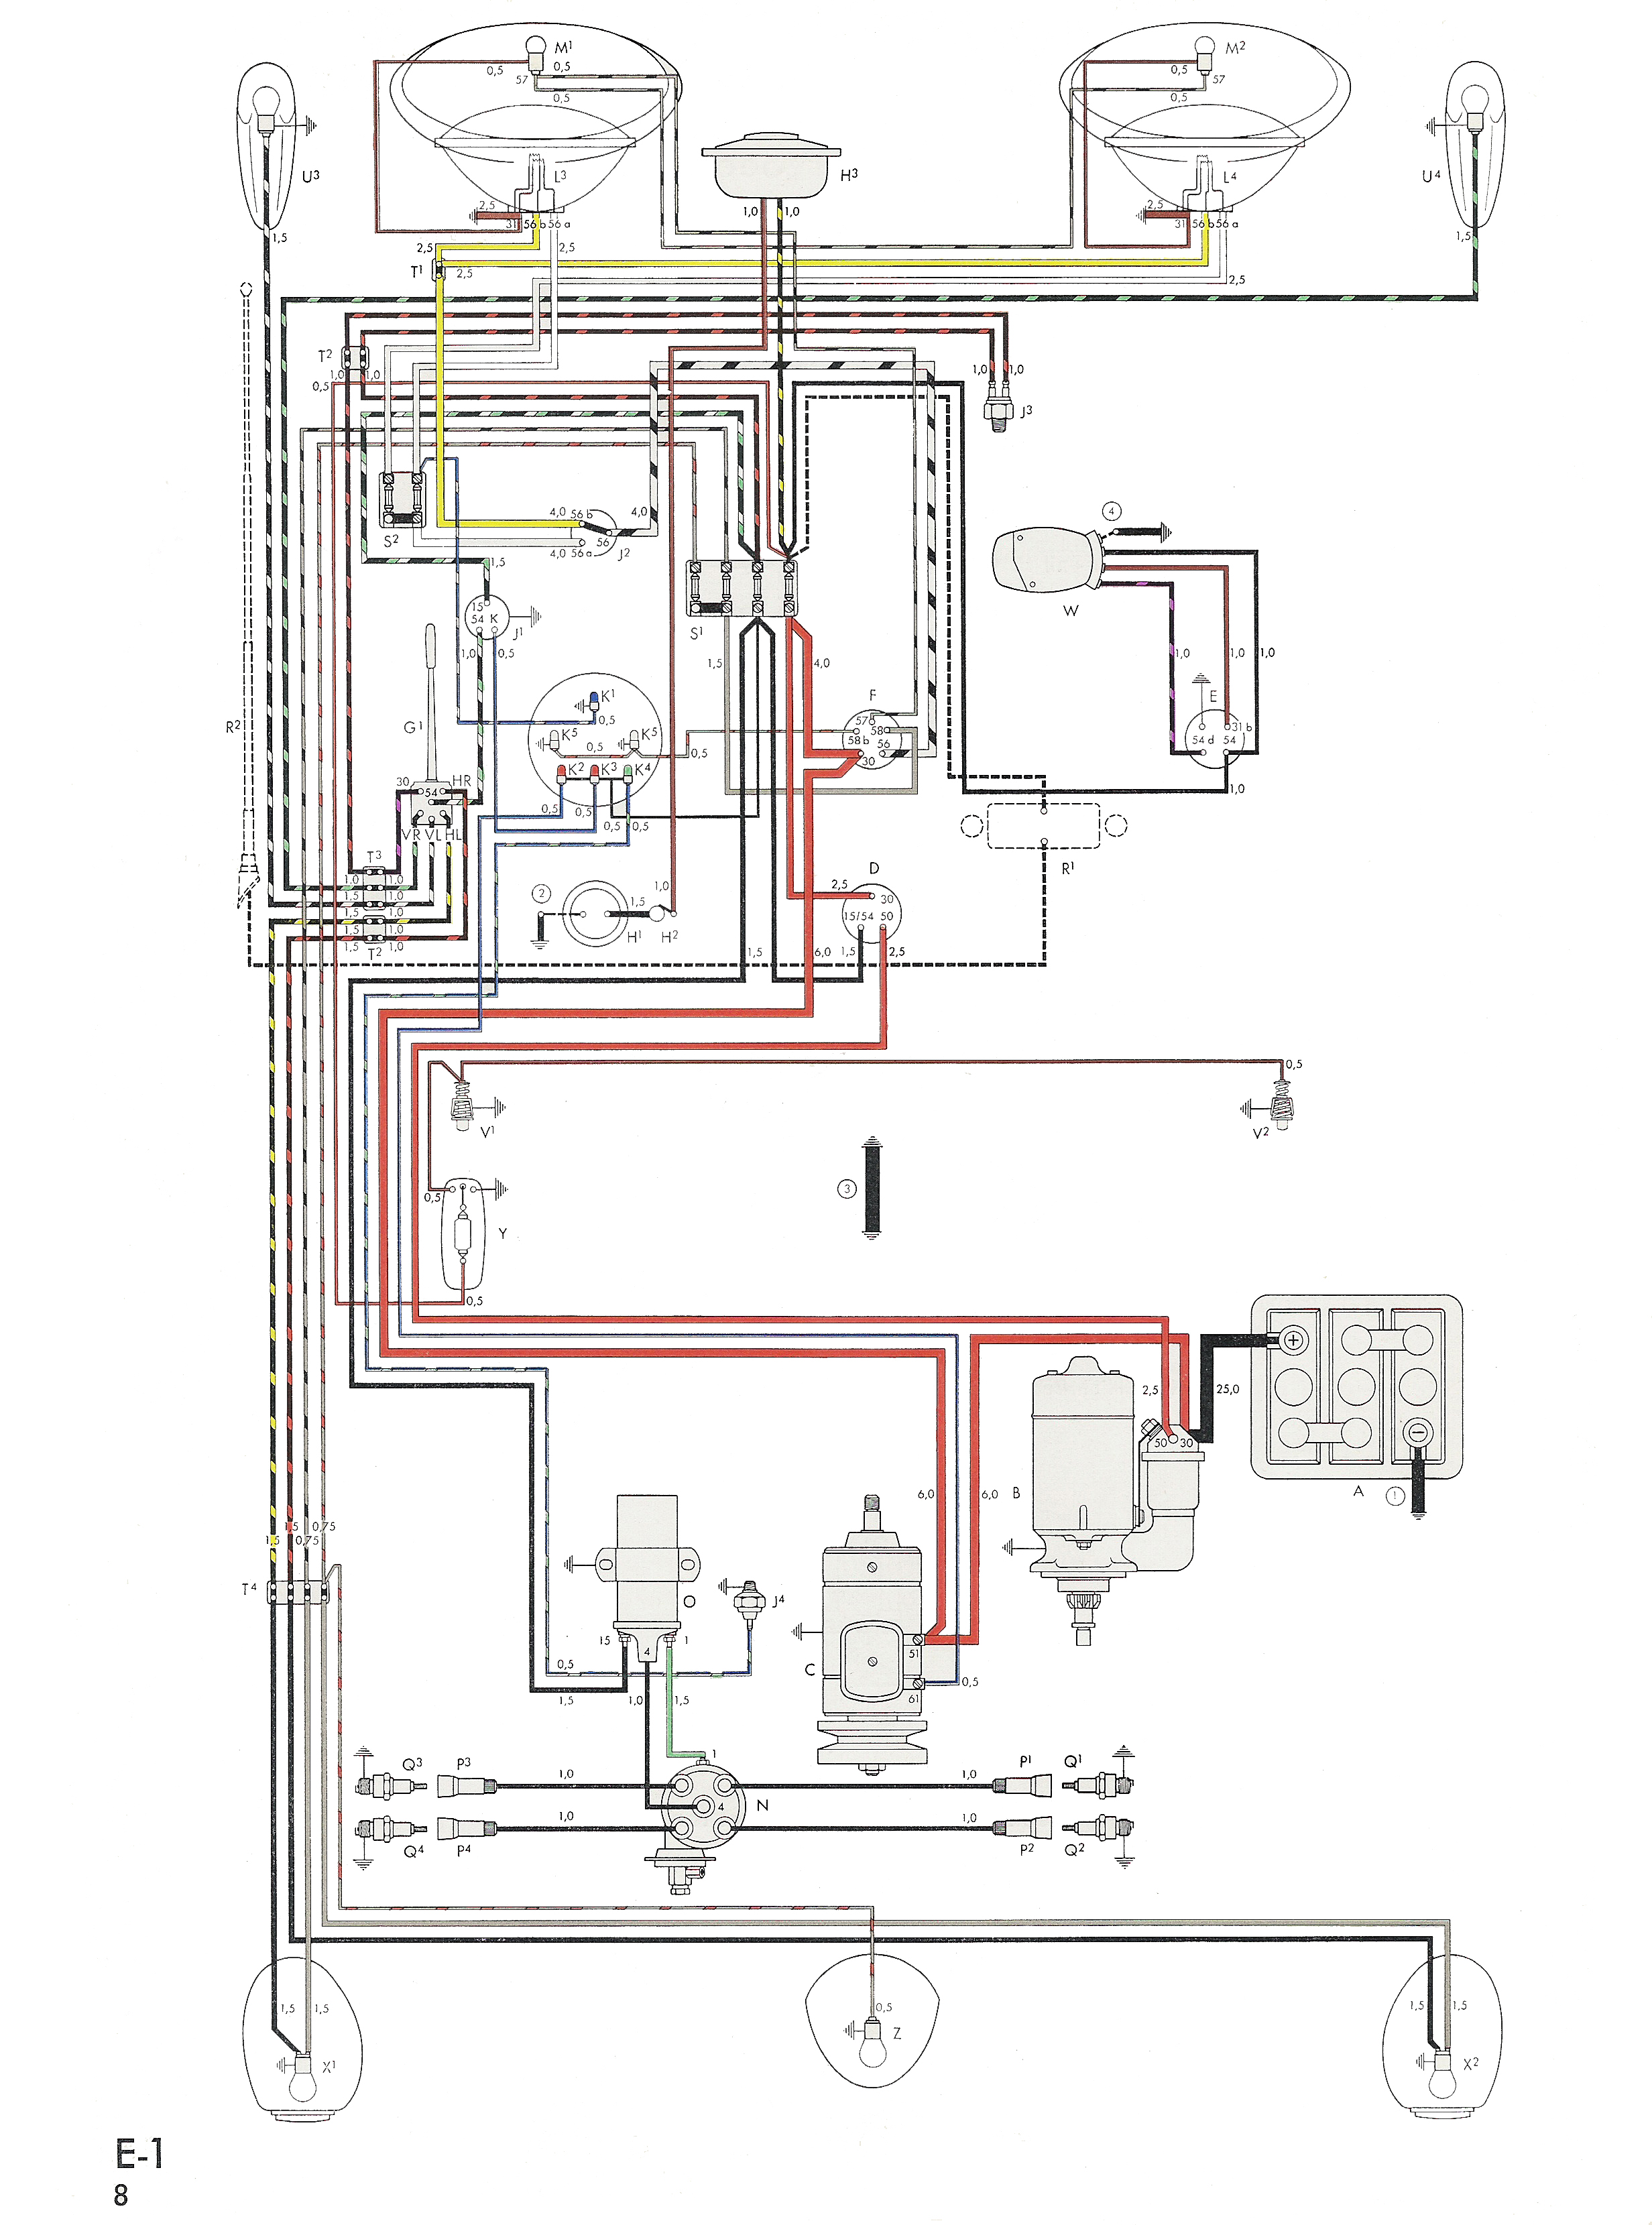 bug_58_USA_300dpi thesamba com type 1 wiring diagrams vw engine wiring diagram at gsmportal.co